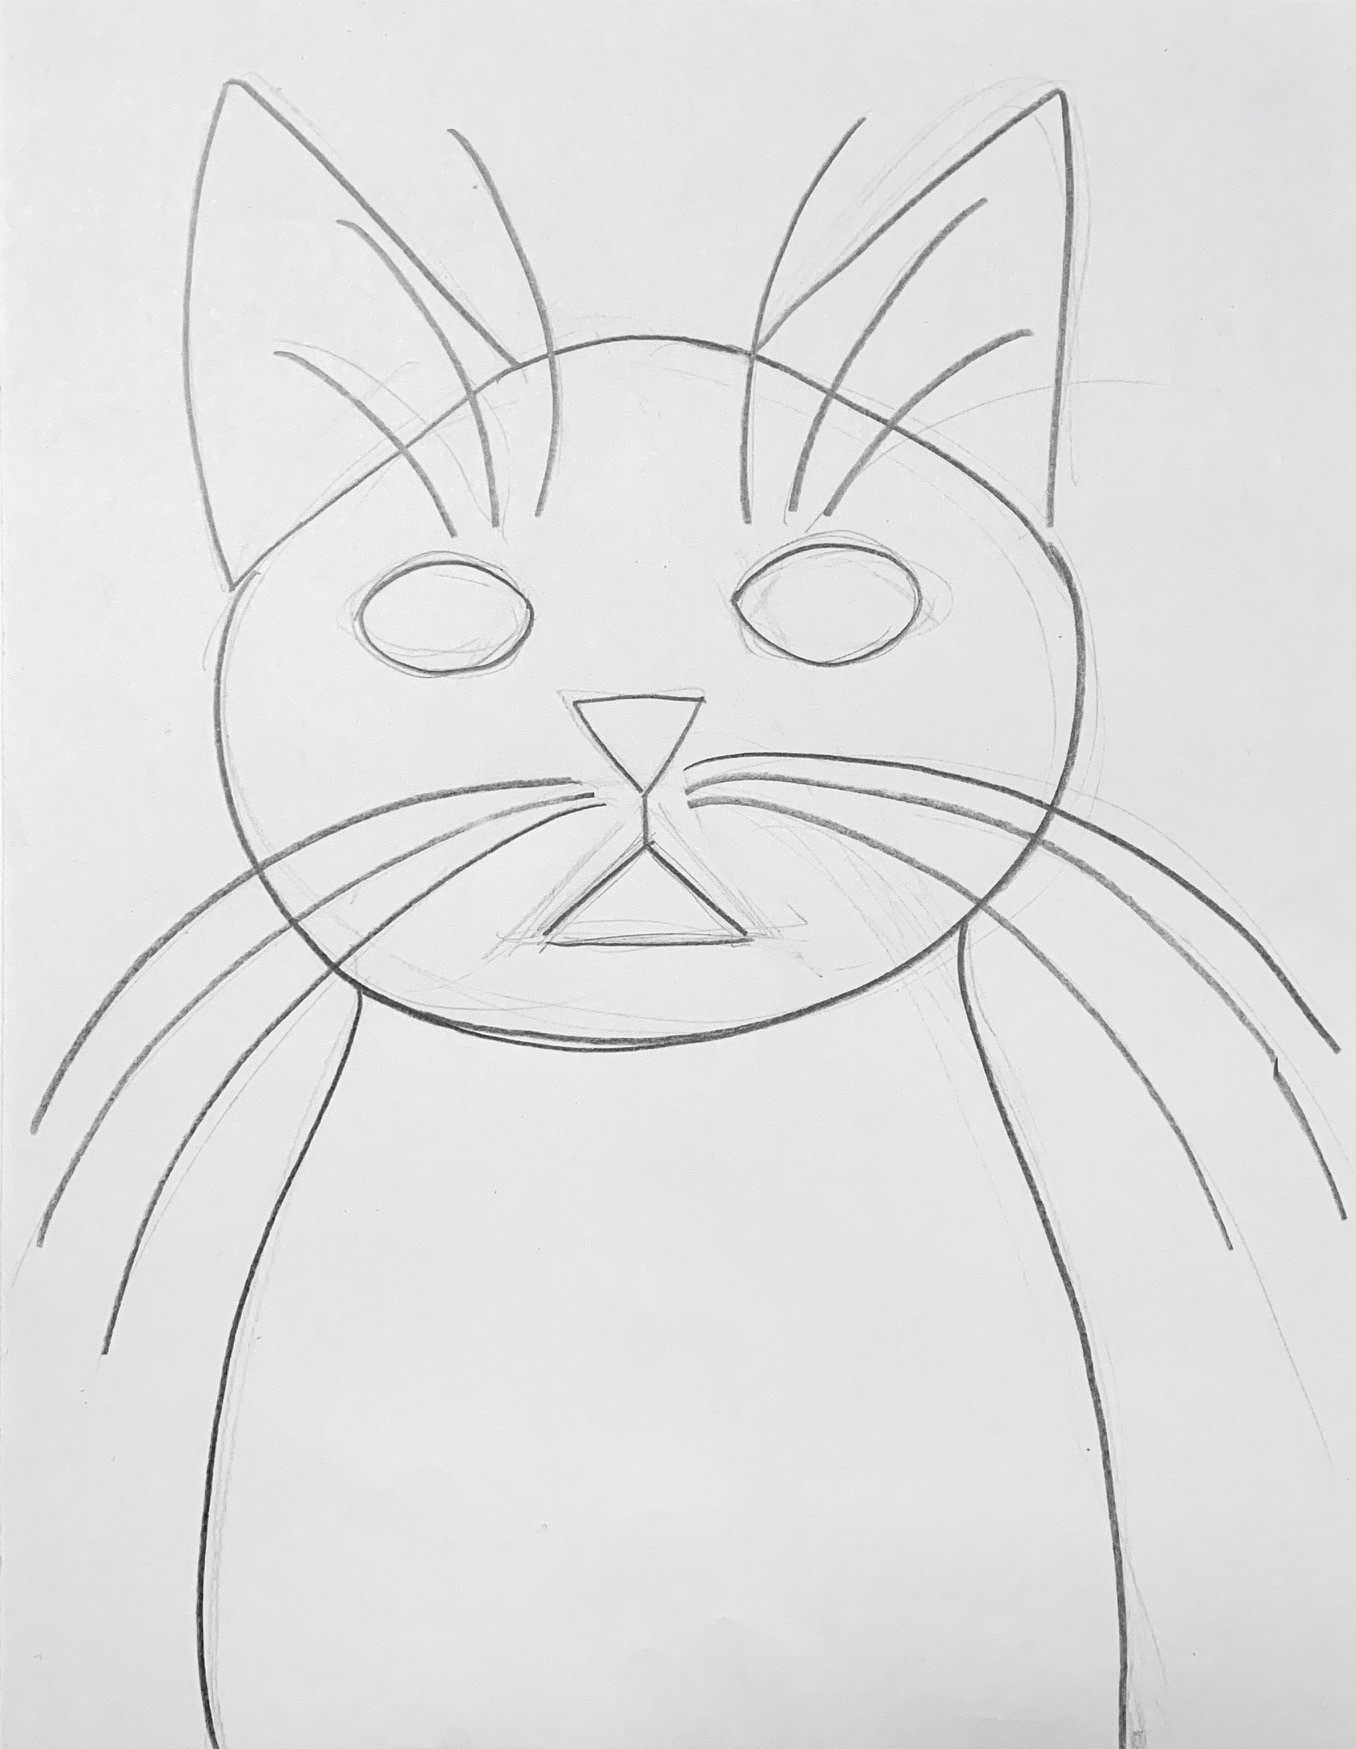 Simple sketch of the upper body of a cat facing forward